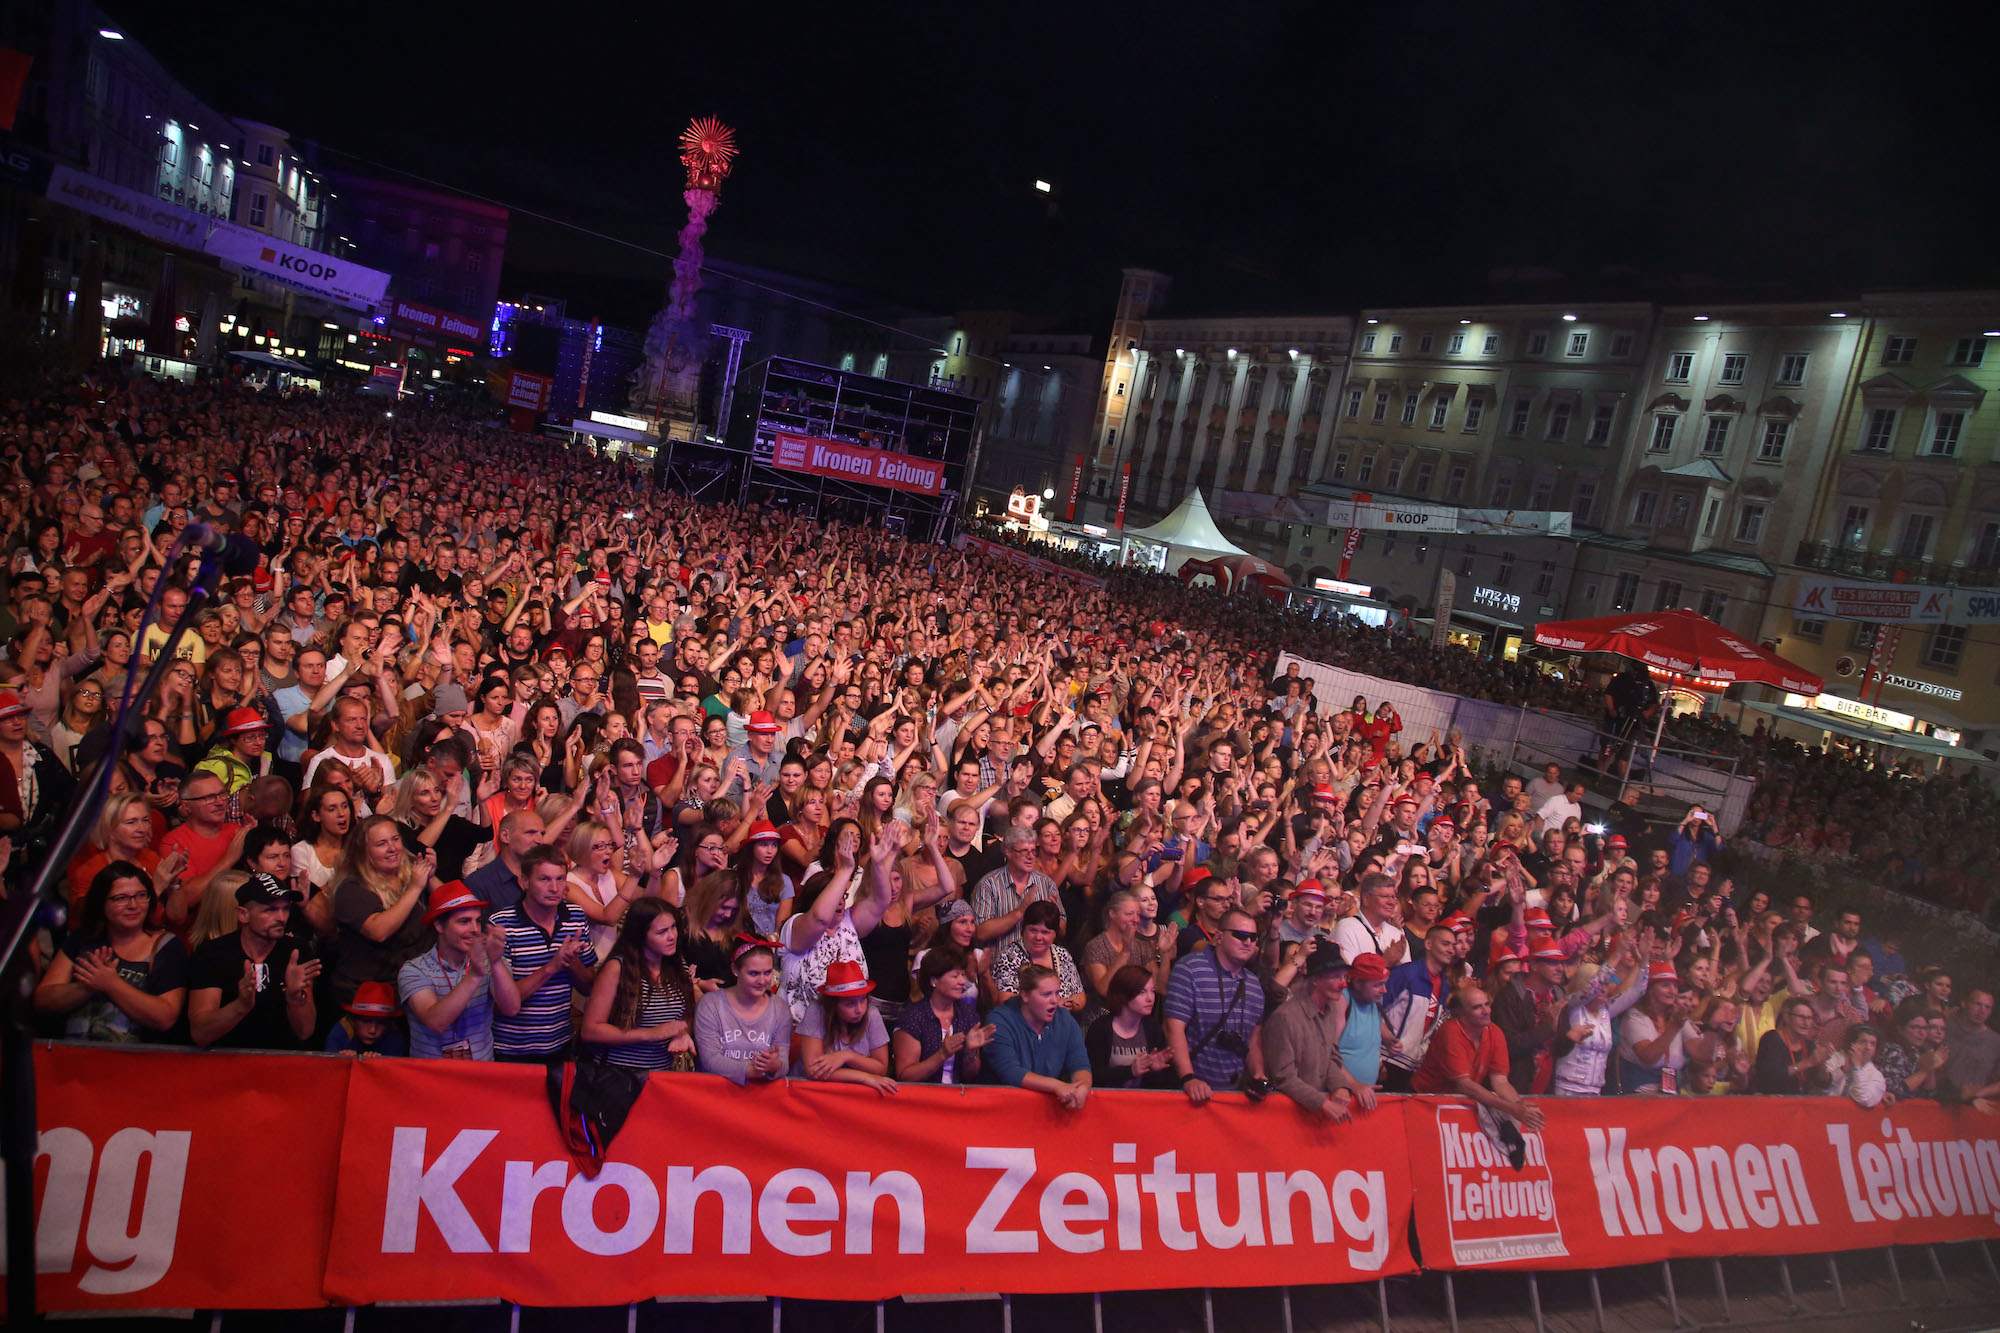 Linzer Kronefest 2015, Eventorganisation by KOOP Live Marketing Eventagentur in Steyregg/Linz